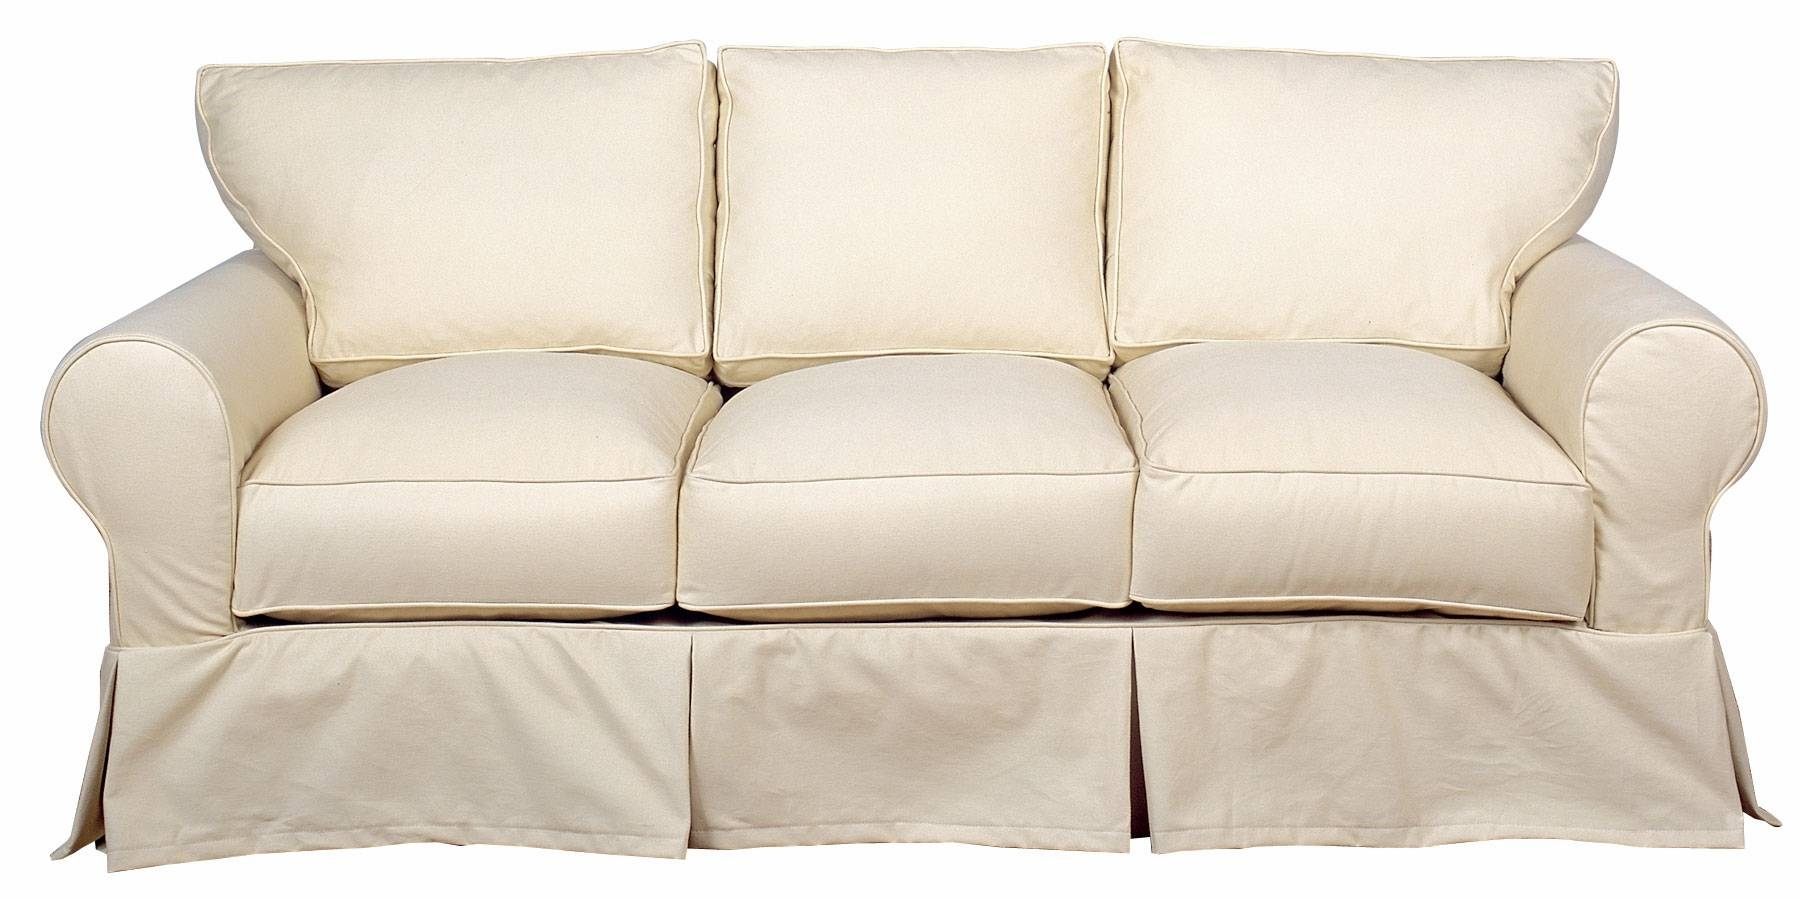 Popular Photo of Slipcovers For 3 Cushion Sofas